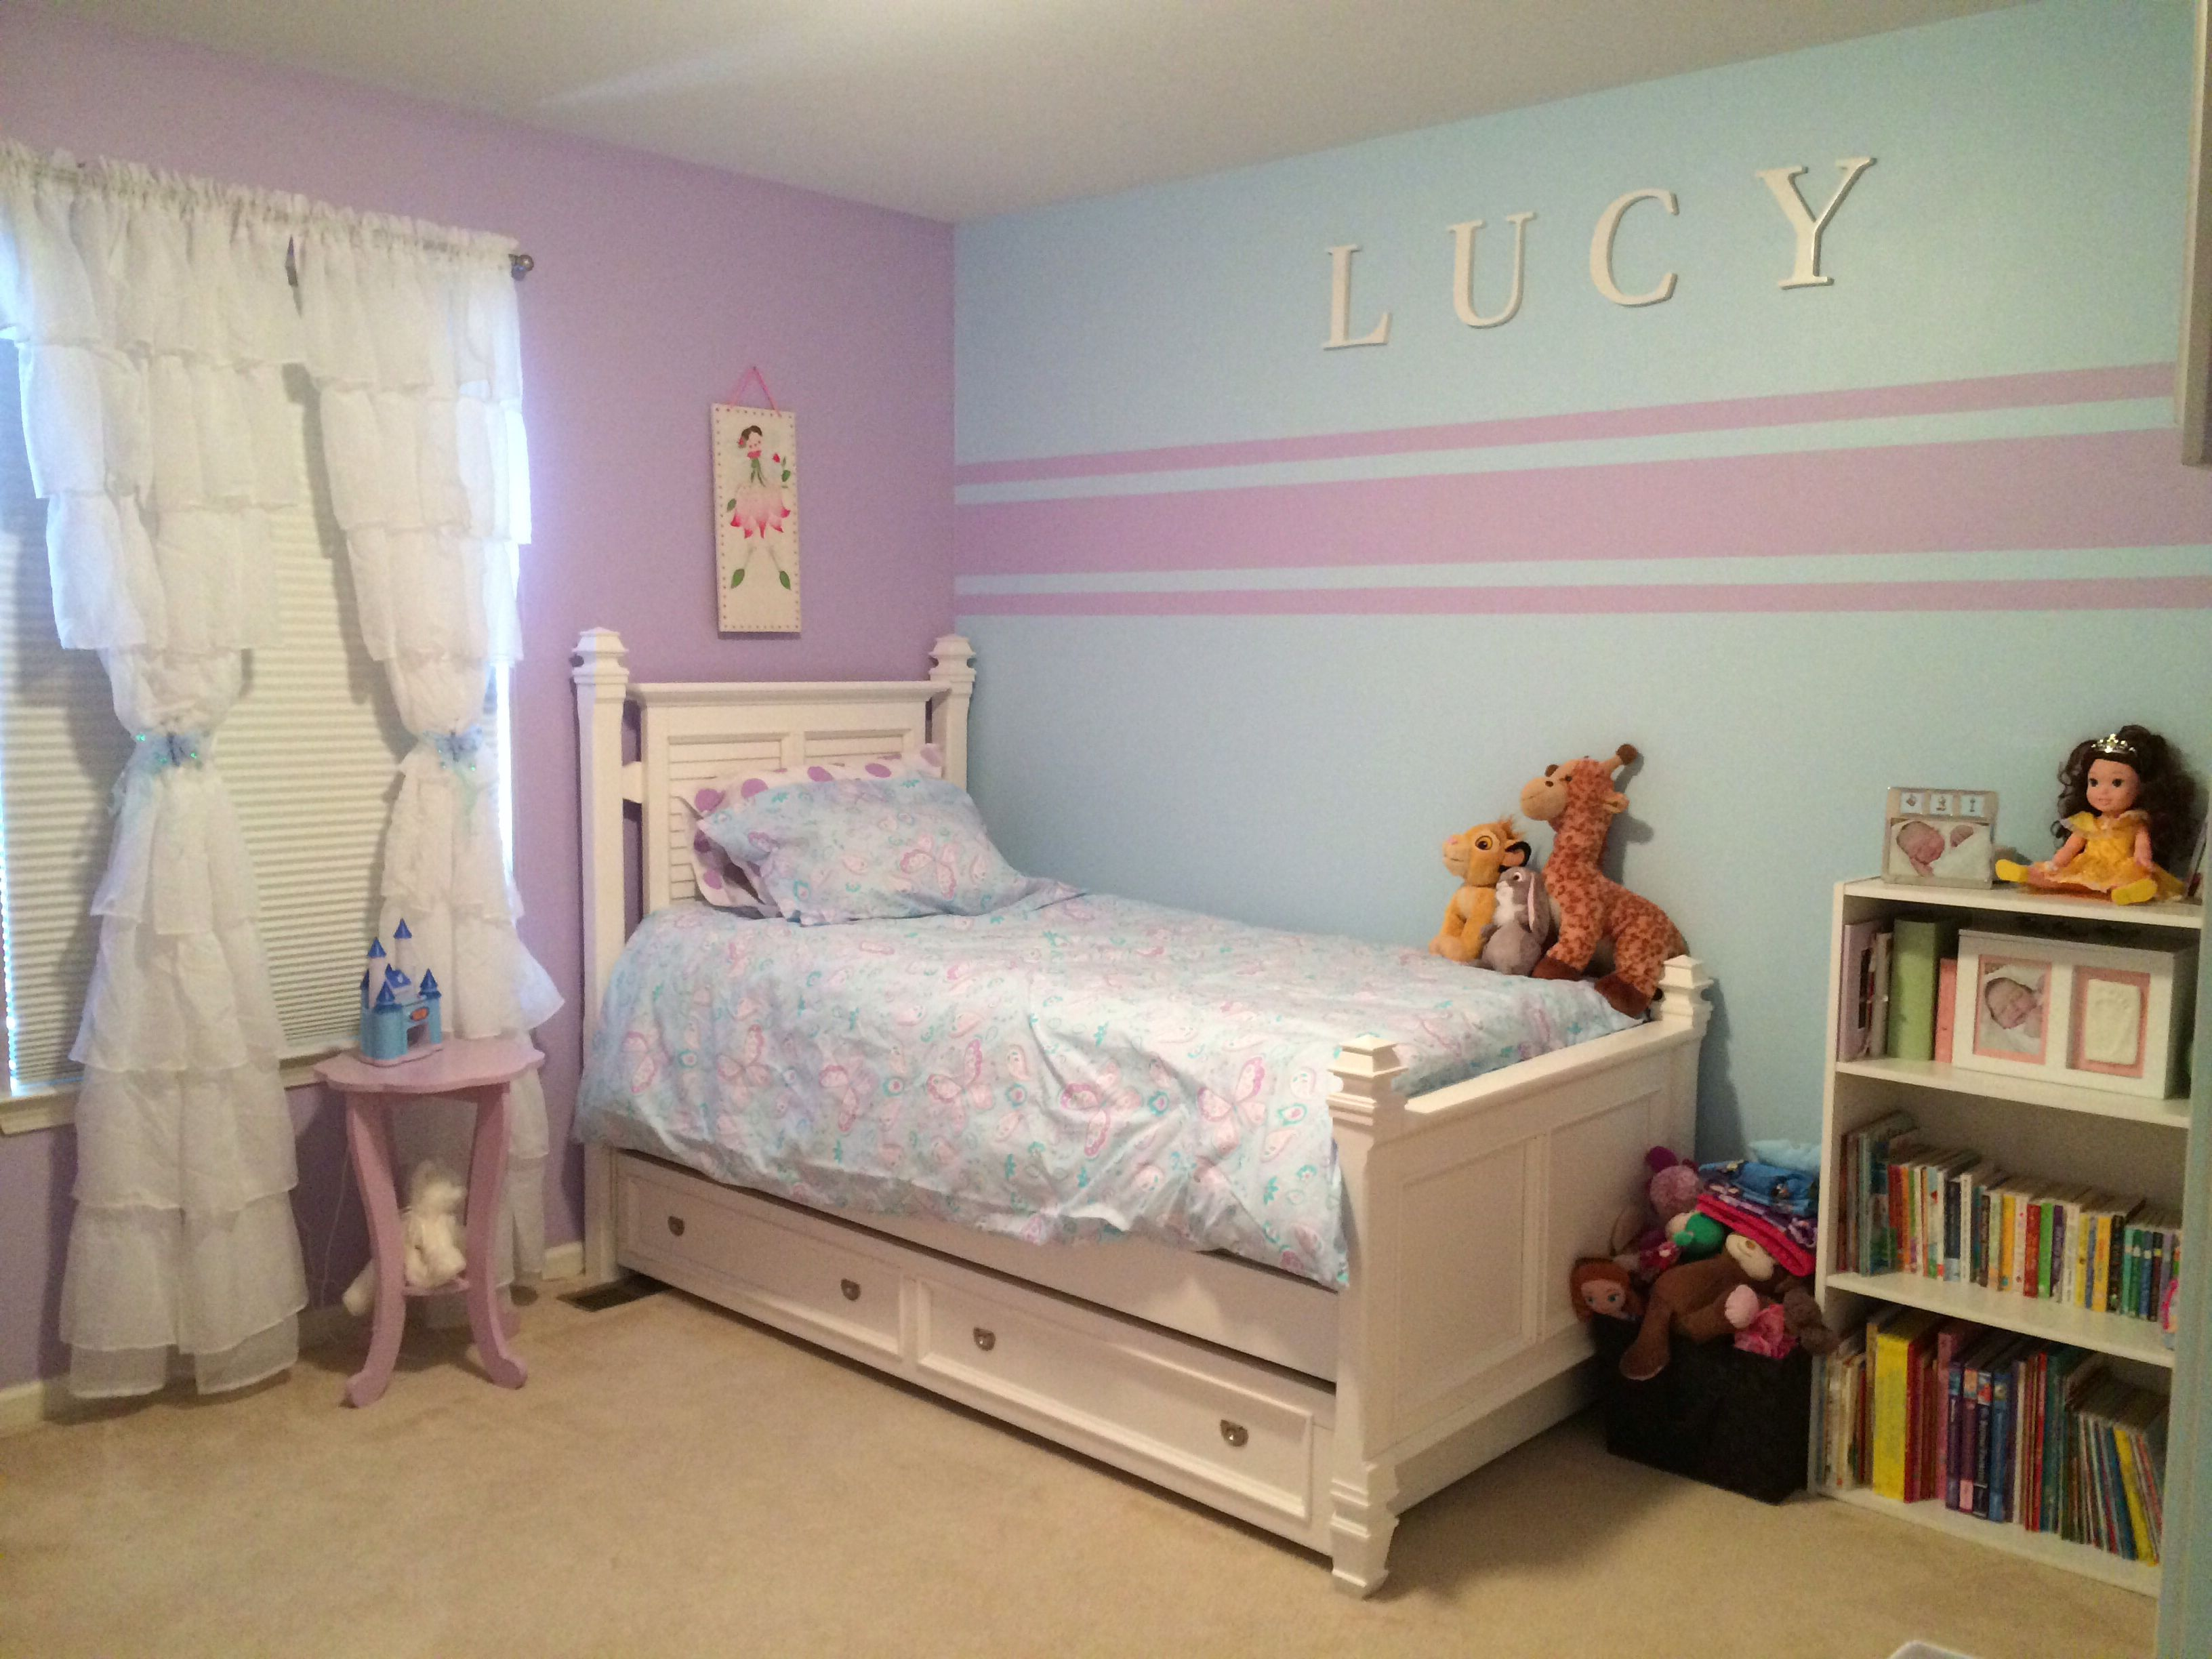 Accent wall stripes for little girl room kristin duvet for Painting stripes on walls in kids room